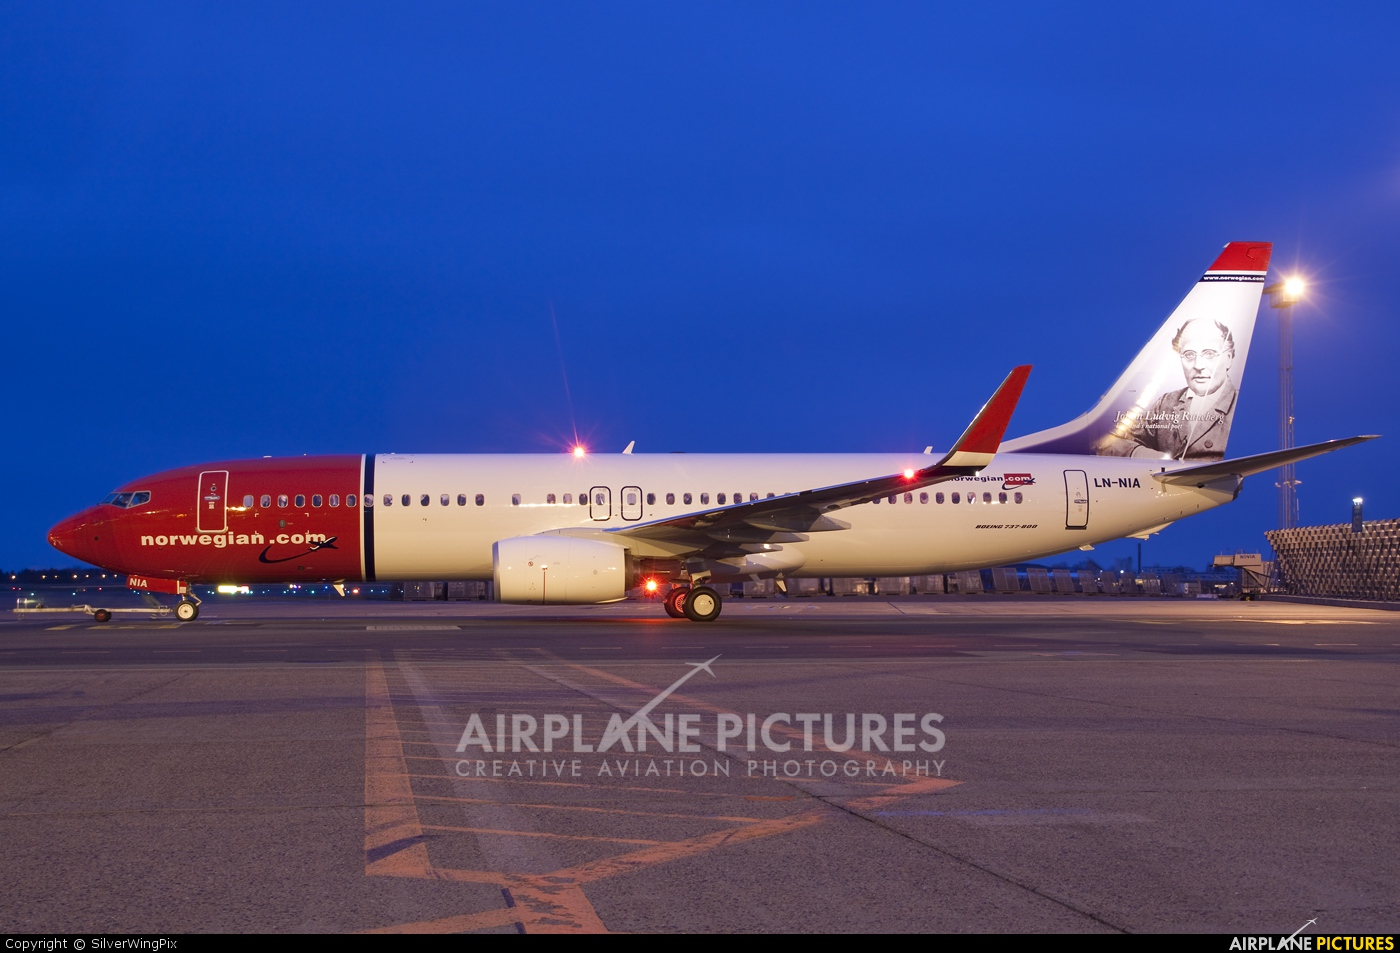 Norwegian Air Shuttle LN-NIA aircraft at Undisclosed location